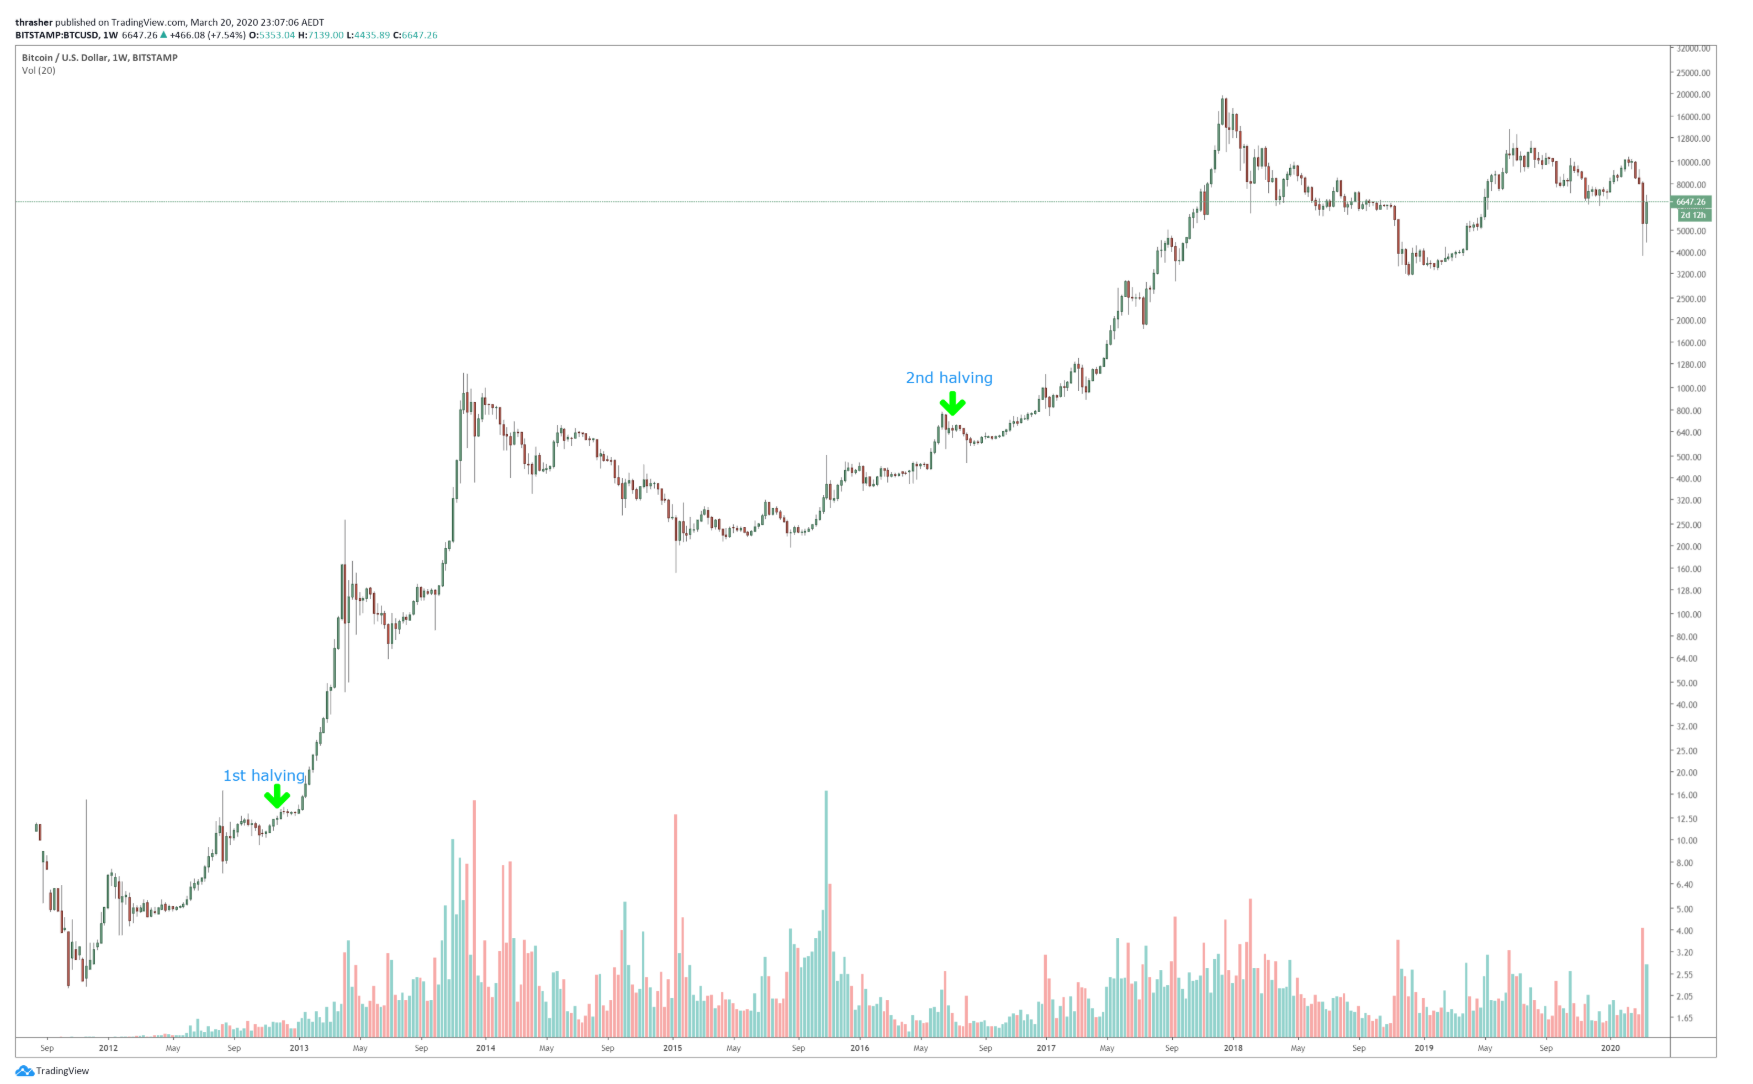 Bitcoin price halving history.png